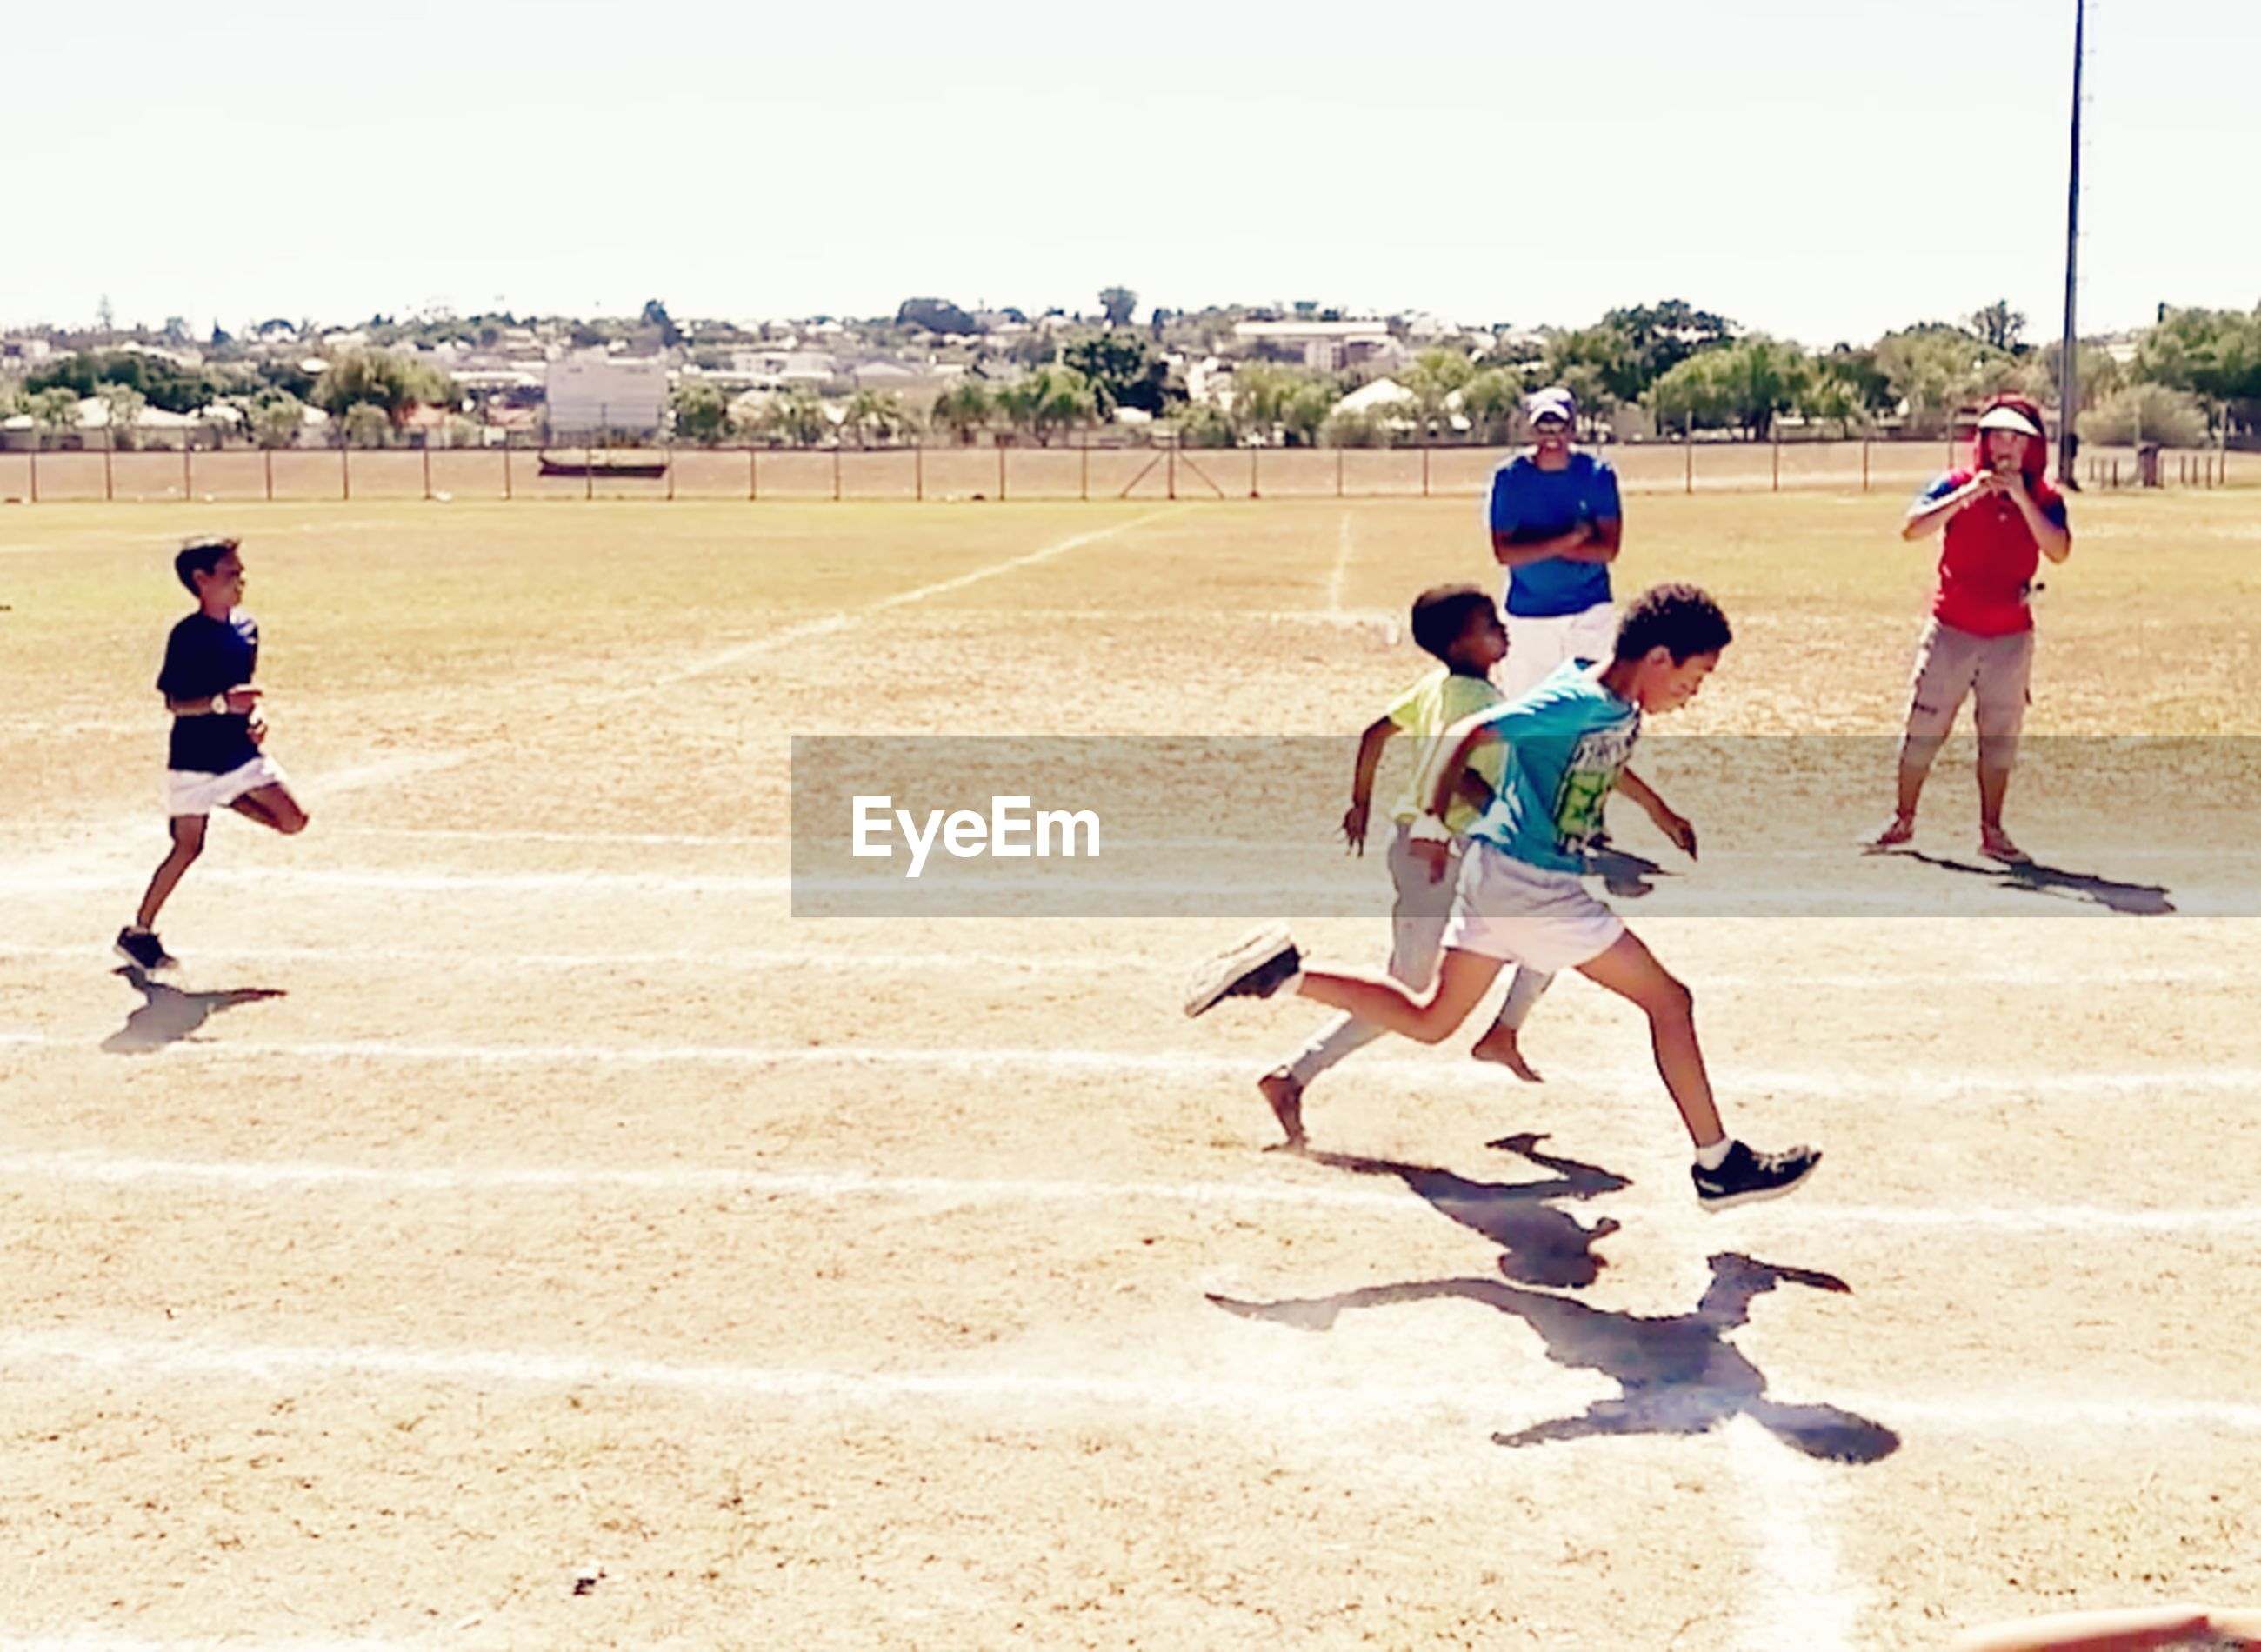 child, boys, sport, baseball - sport, childhood, full length, children only, competition, summer, healthy lifestyle, people, outdoors, pre-adolescent child, beach, sports uniform, day, track and field athlete, large group of people, baseball uniform, togetherness, sports training, athlete, baseball player, track and field, baseball team